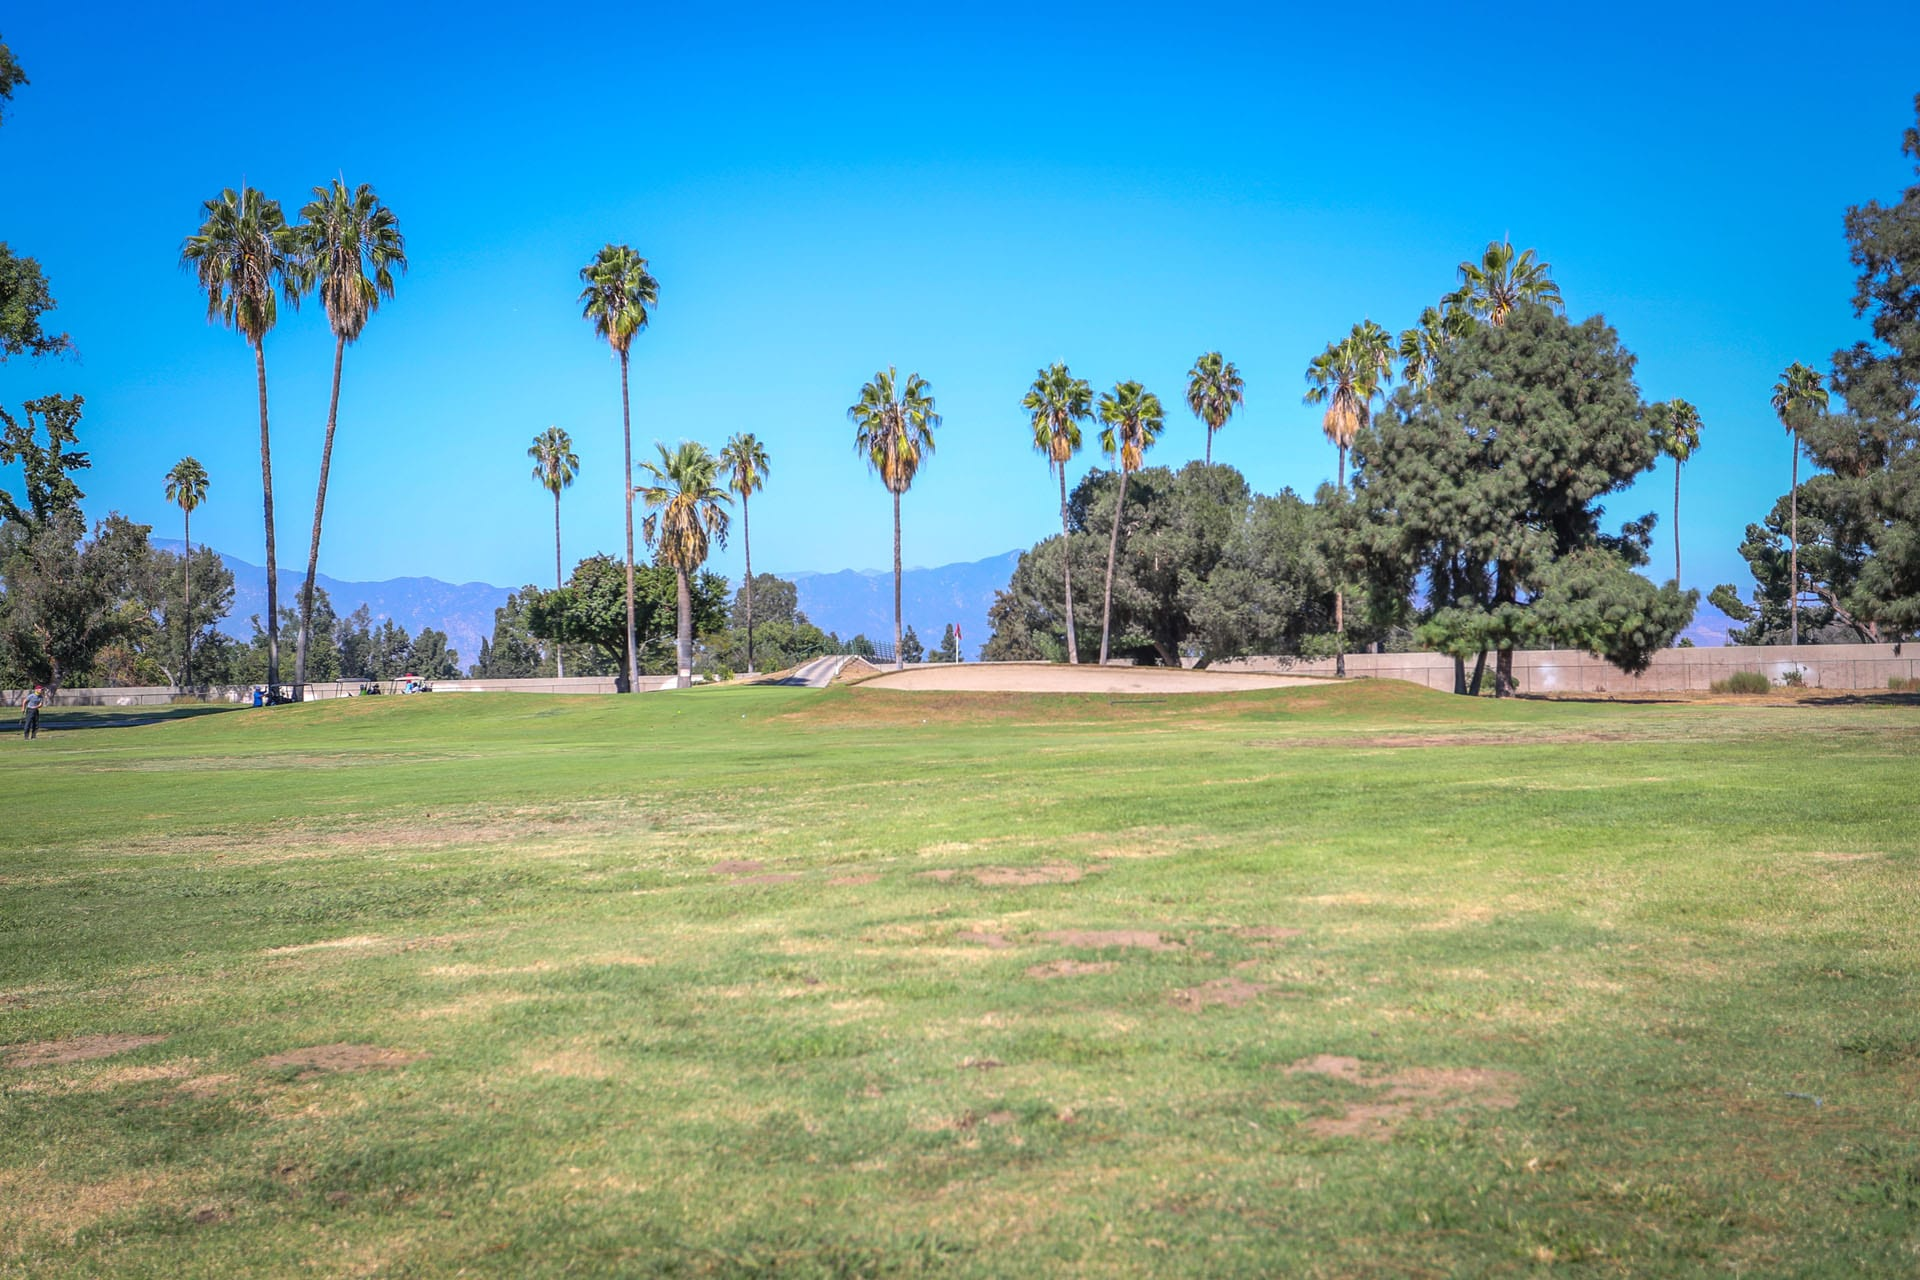 Open lawn and palm trees